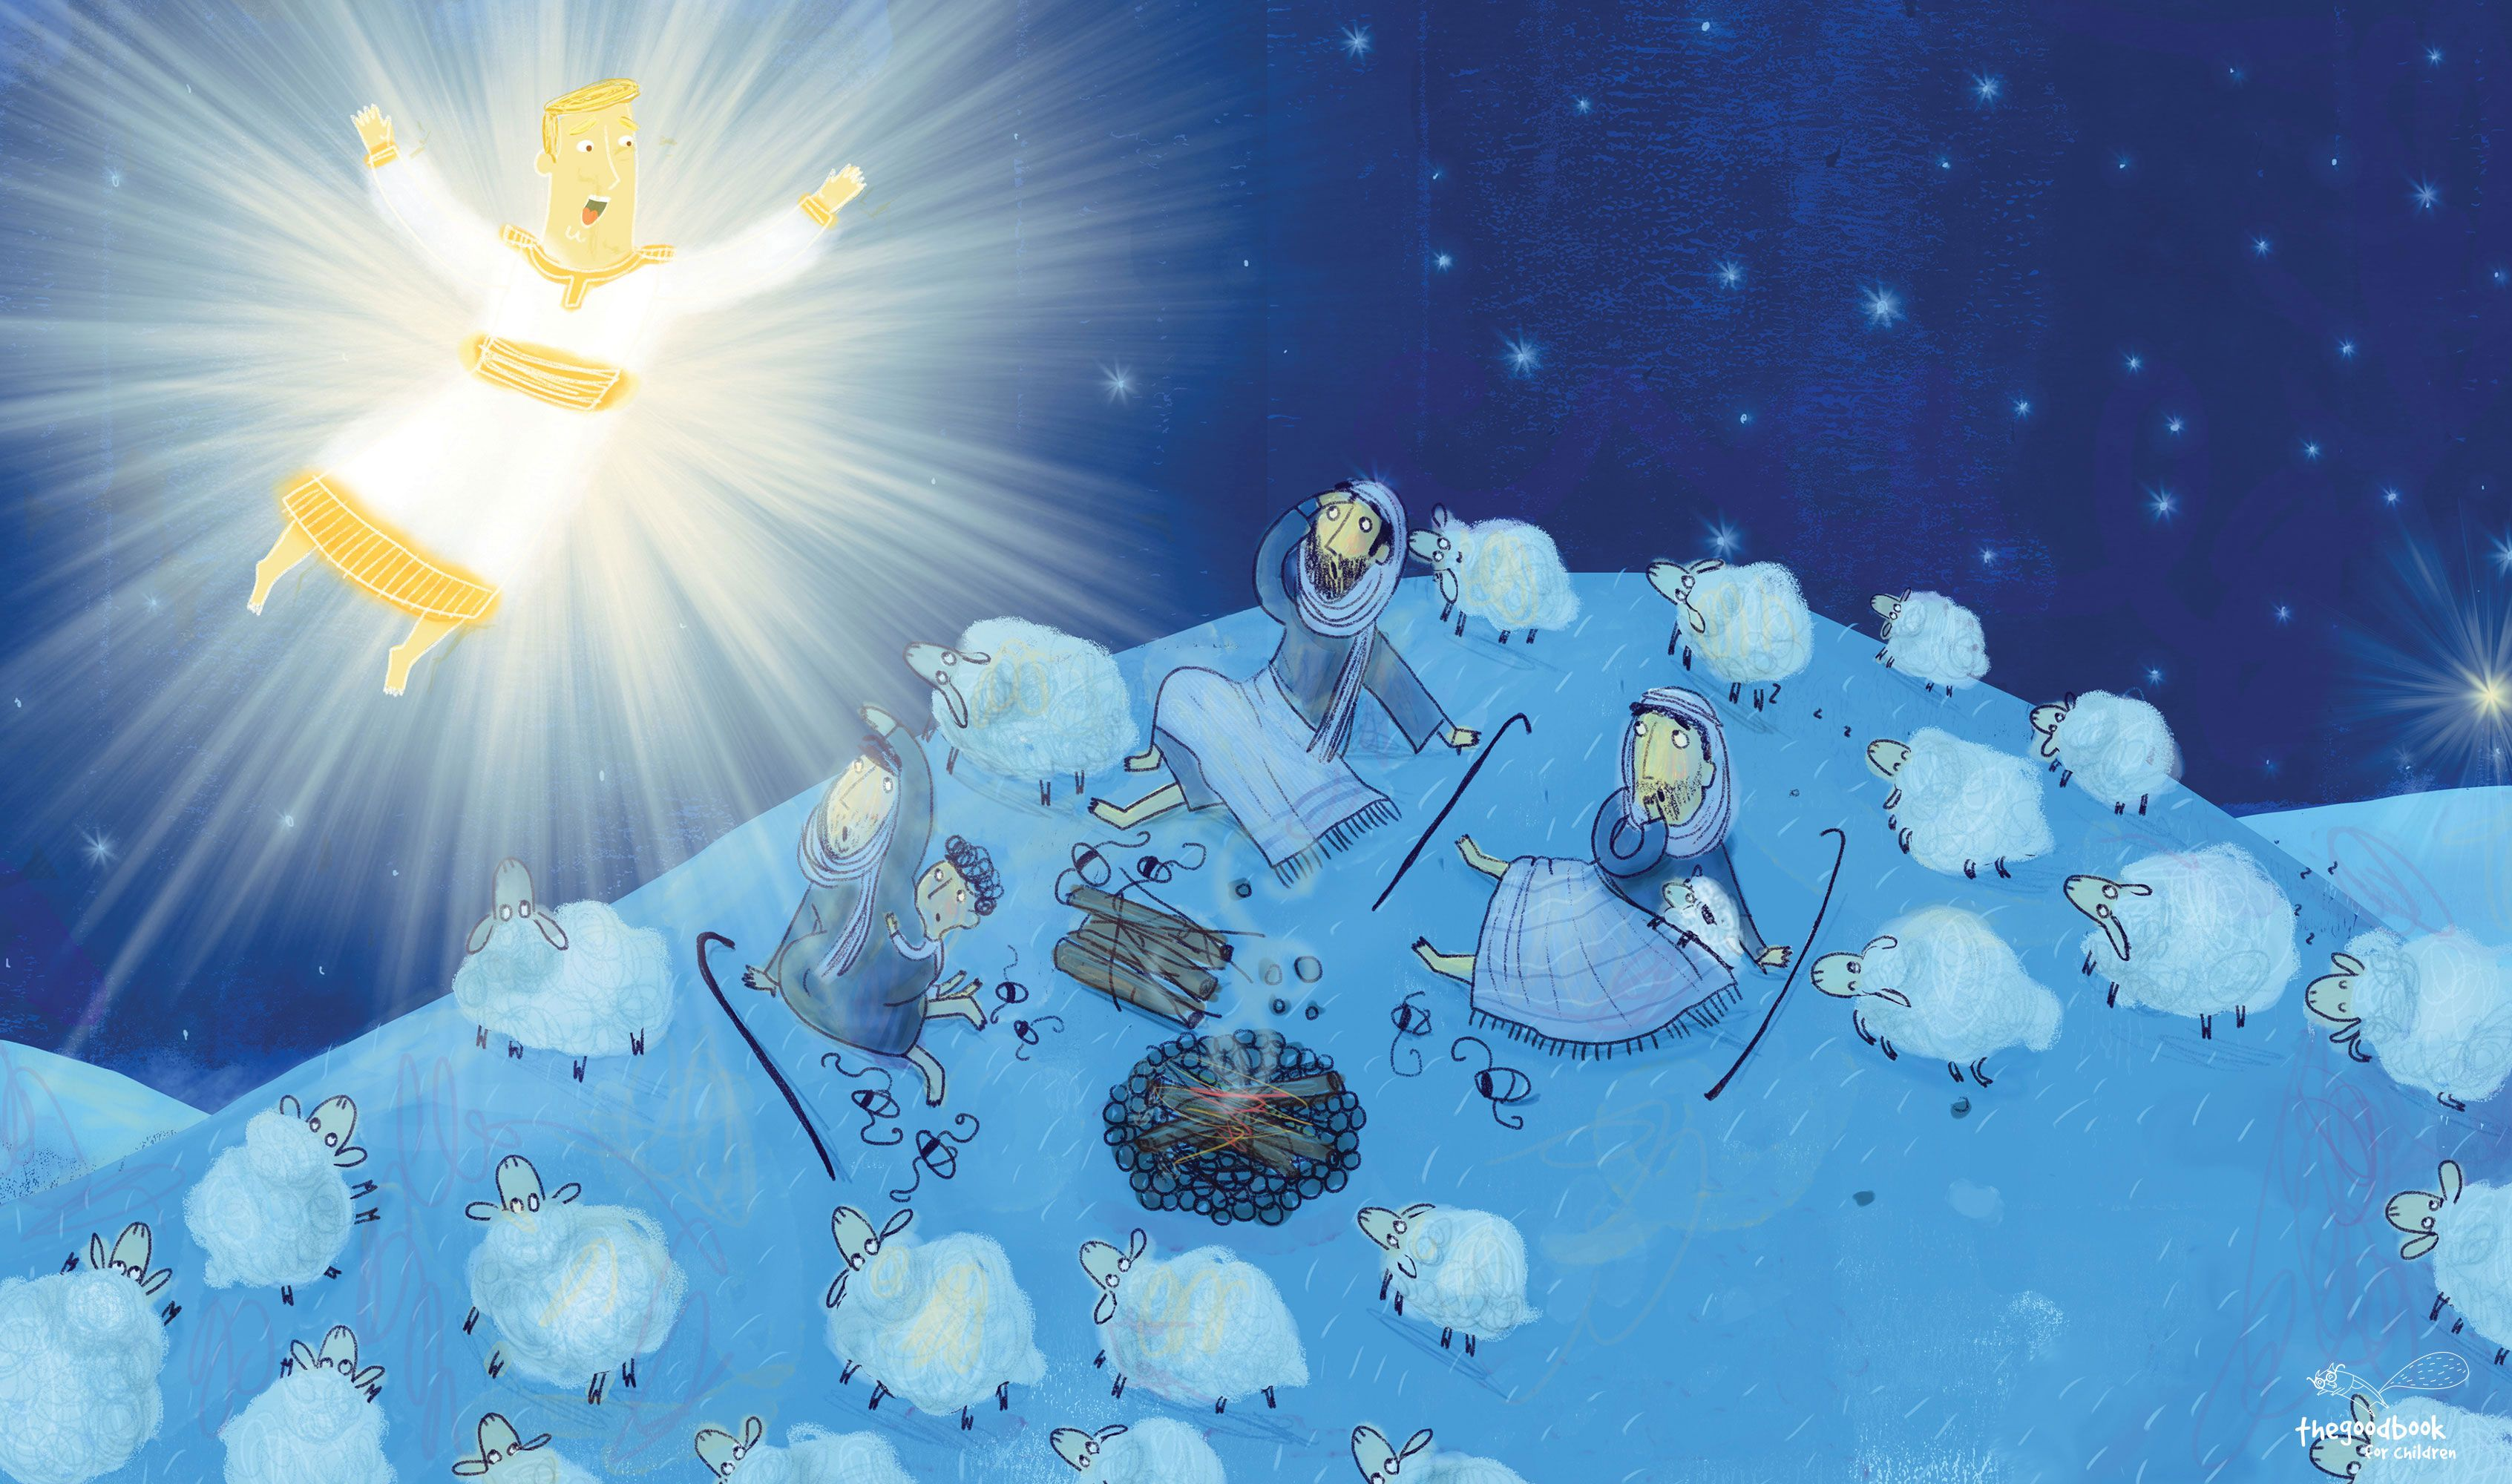 """""""An angel of the Lord appeared to them, and the glory of the Lord shone around them, and they were terrified."""" (Luke 2:9). Stunning illustration showing the angel Gabriel appearing the the shepherds, from The Christmas Promise by Catalina Echeverri and Alison Mitchell. You can download illustrations to use to tell the story in your church free from our website."""